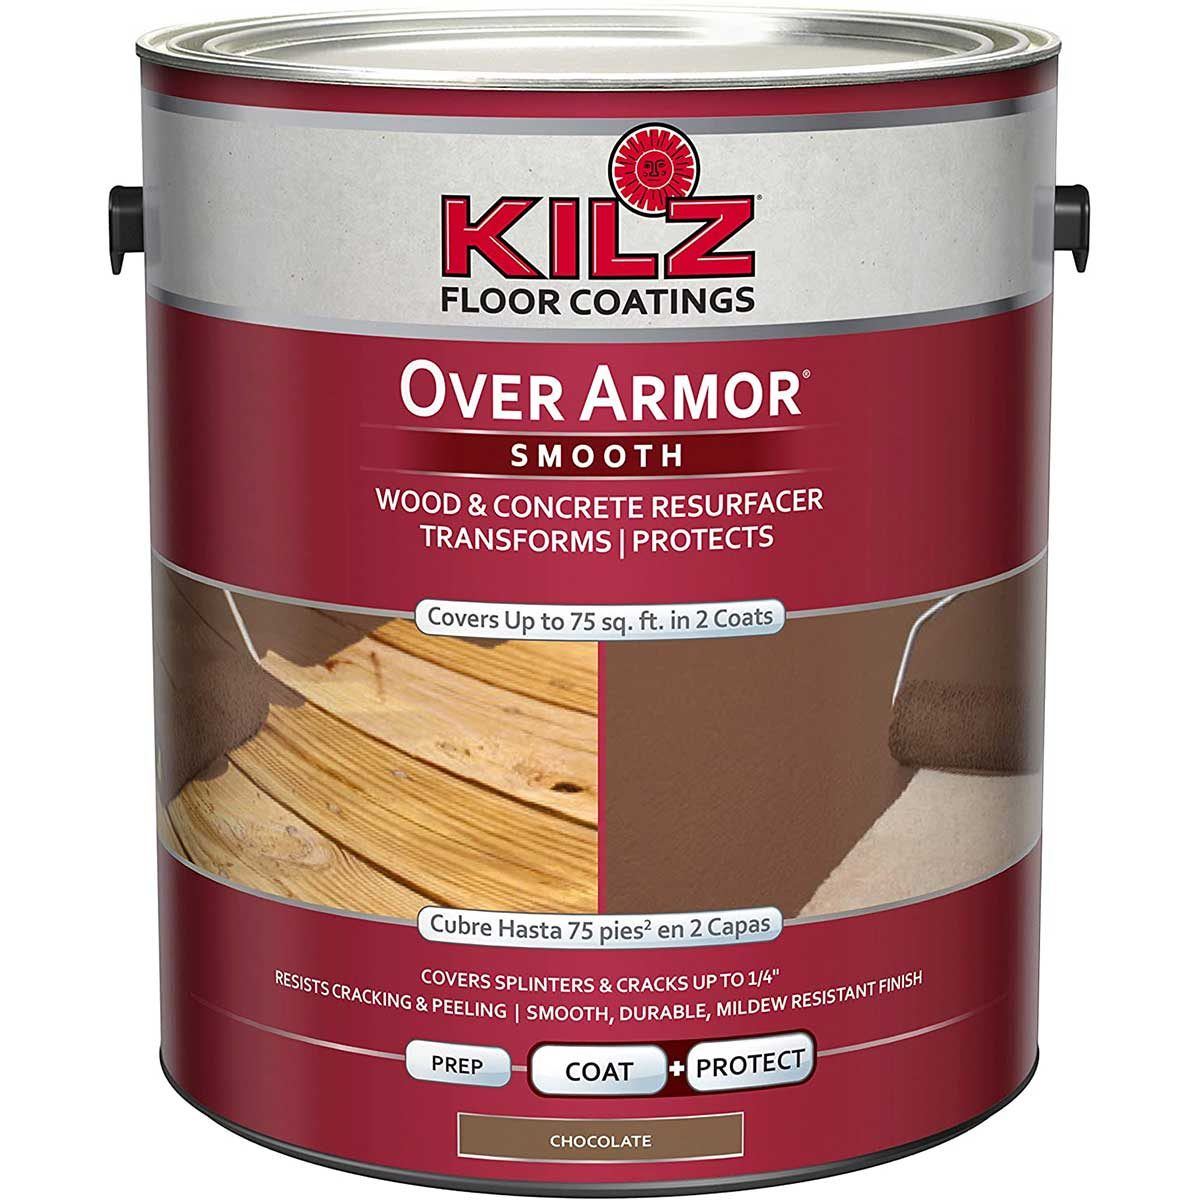 A can of Kilz wood coating